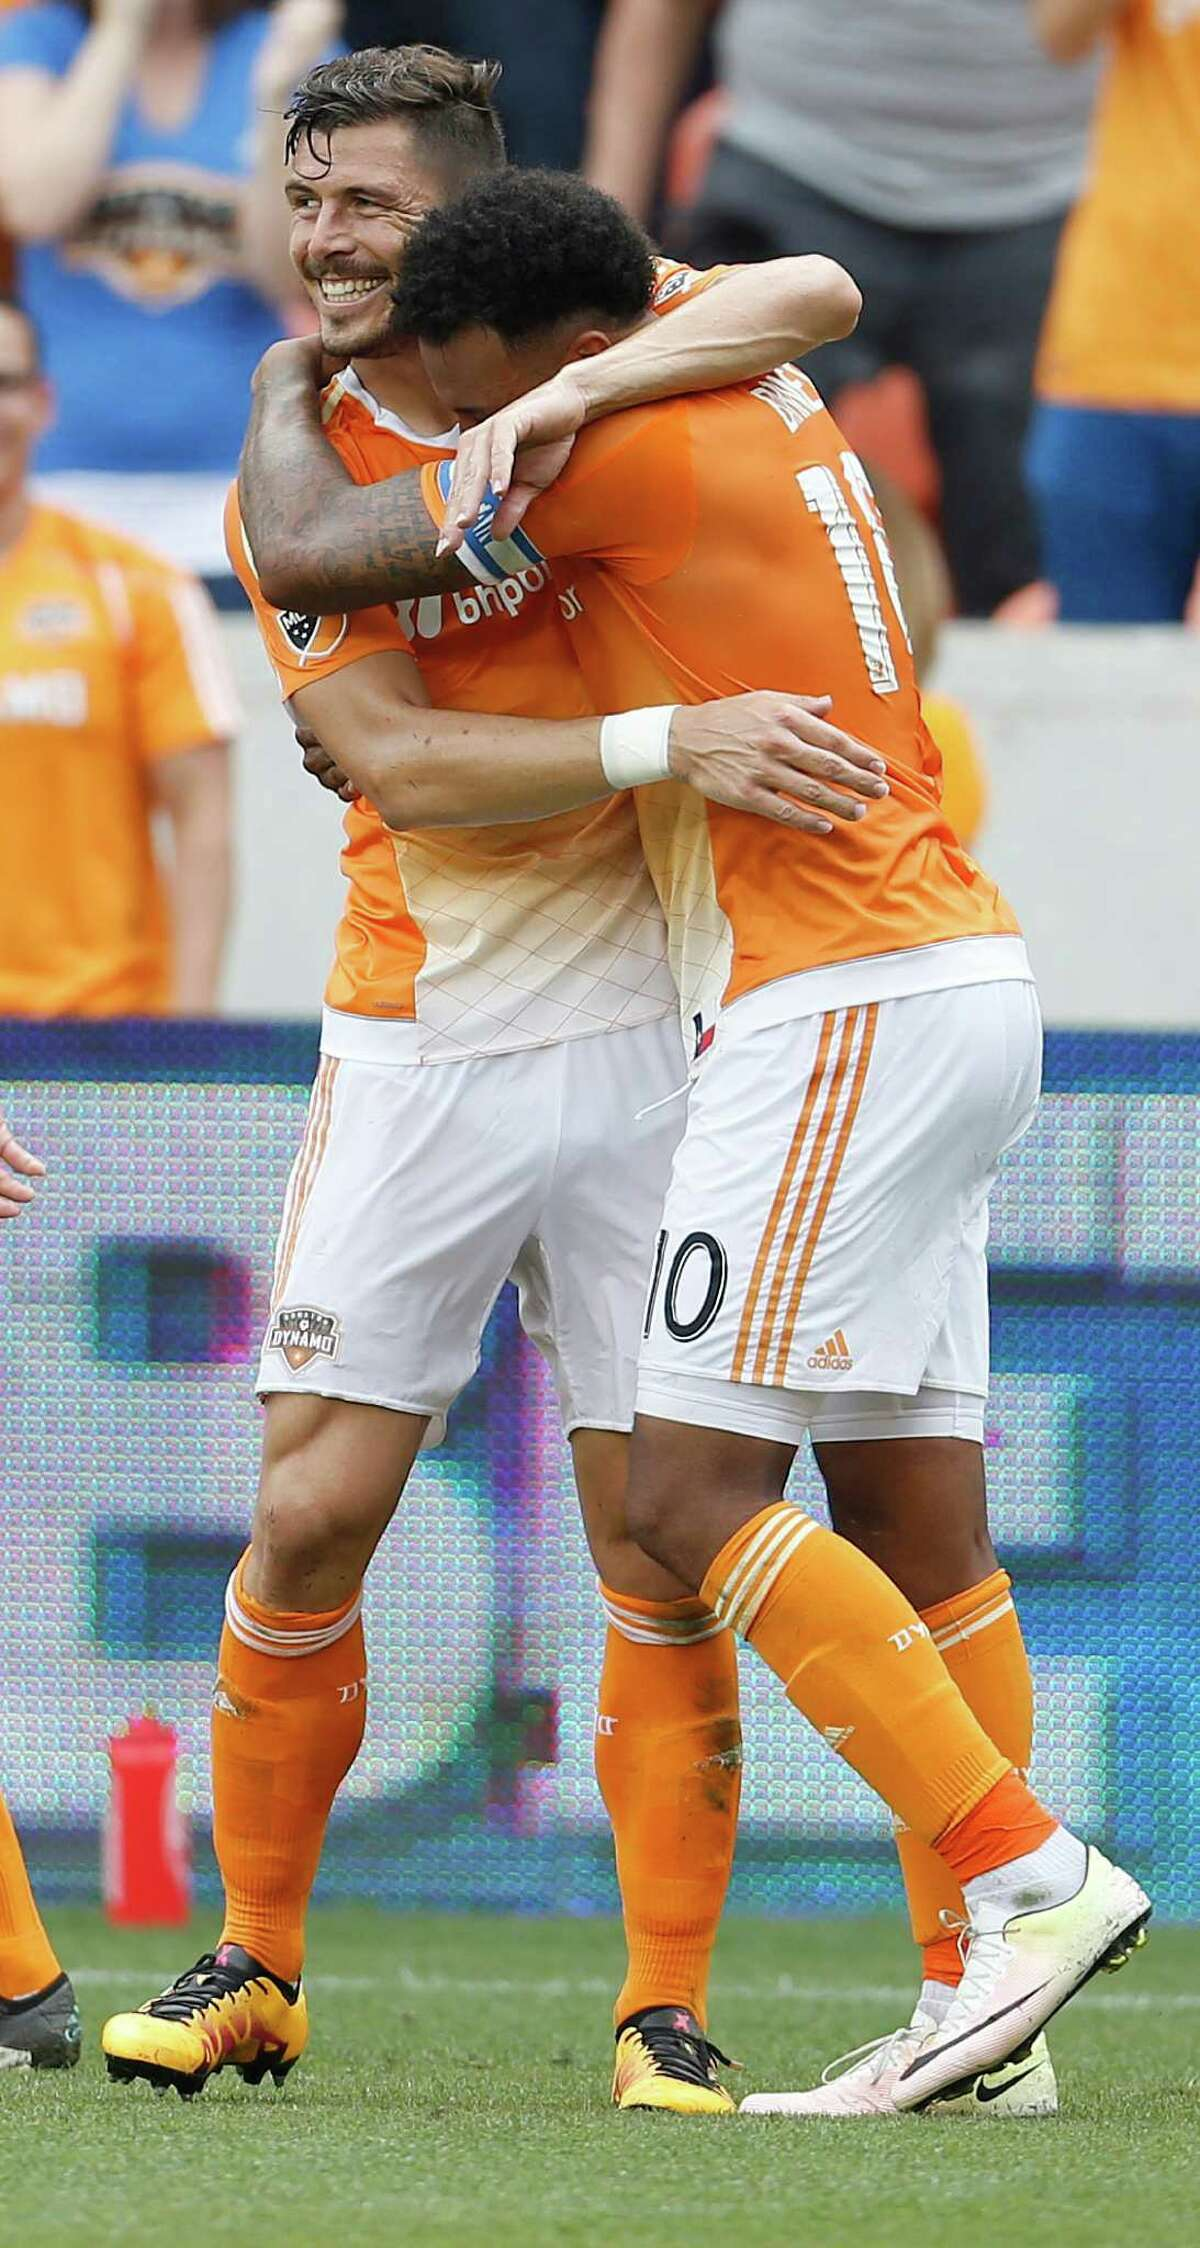 Houston Dynamo defender Agus (4) hugs Dynamo forward Giles Barnes (10) after Barnes scored a goal during the second half of an MLB soccer game at BBVA Compass Stadium, Sunday, May 15, 2016, in Houston. Dynamo won the game 1-0.